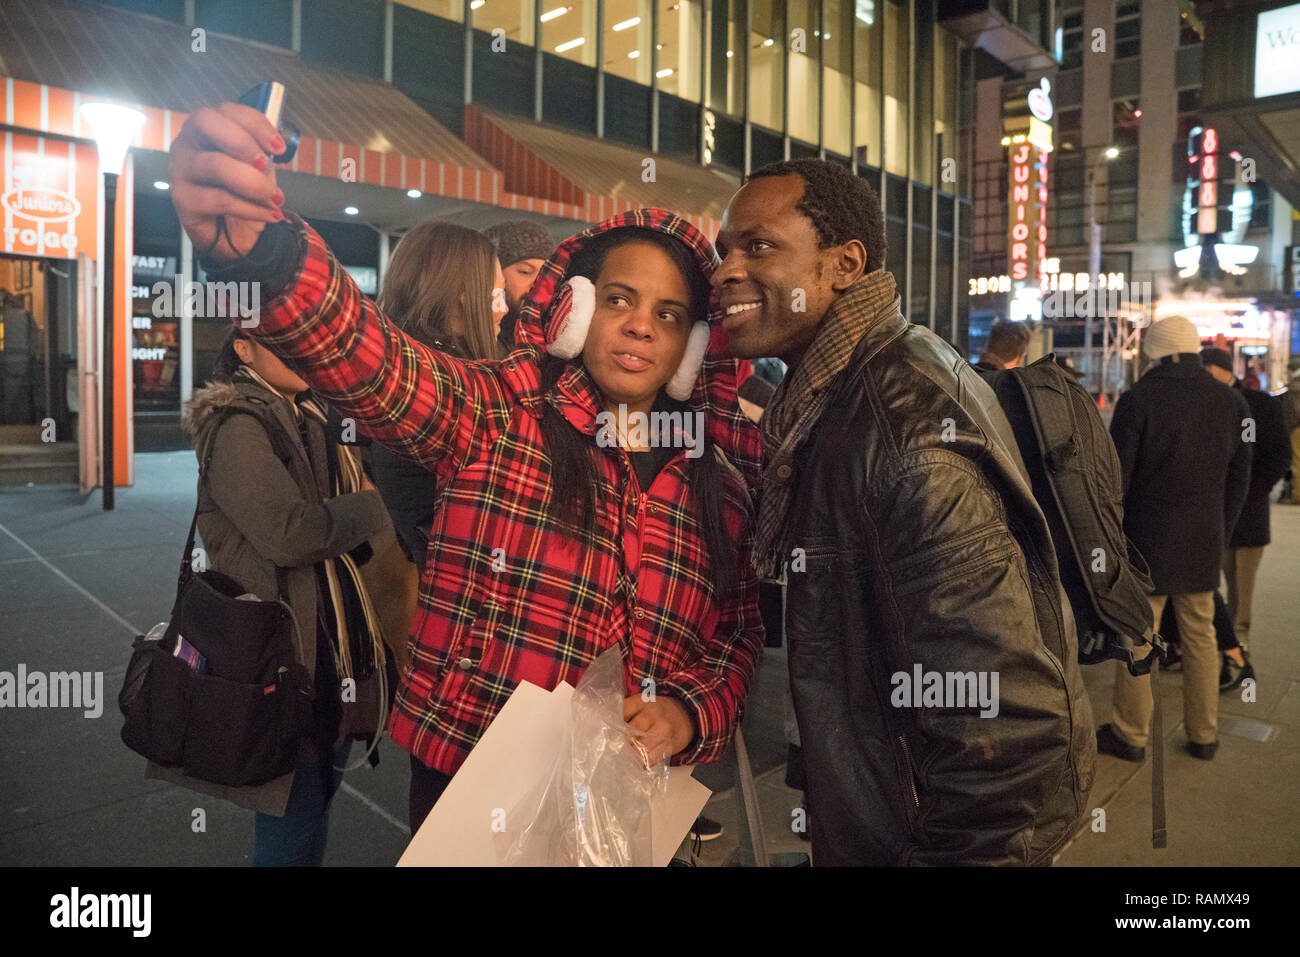 "New York, NY, 3 January 2019 - Gbenga Akinnagbe, who plays Tom Robinson in the Broadway production of ""To Kill a Mockingbird,"" with a fan after the show. Aaron Sorkin's adaption of Harper Lee's novel shattered records in its second full week of performances, grossing $1.702 million. That makes it the highest single-week grossing American play in Broadway history. Photo: Credit: Terese Loeb Kreuzer/Alamy Live News - Stock Image"